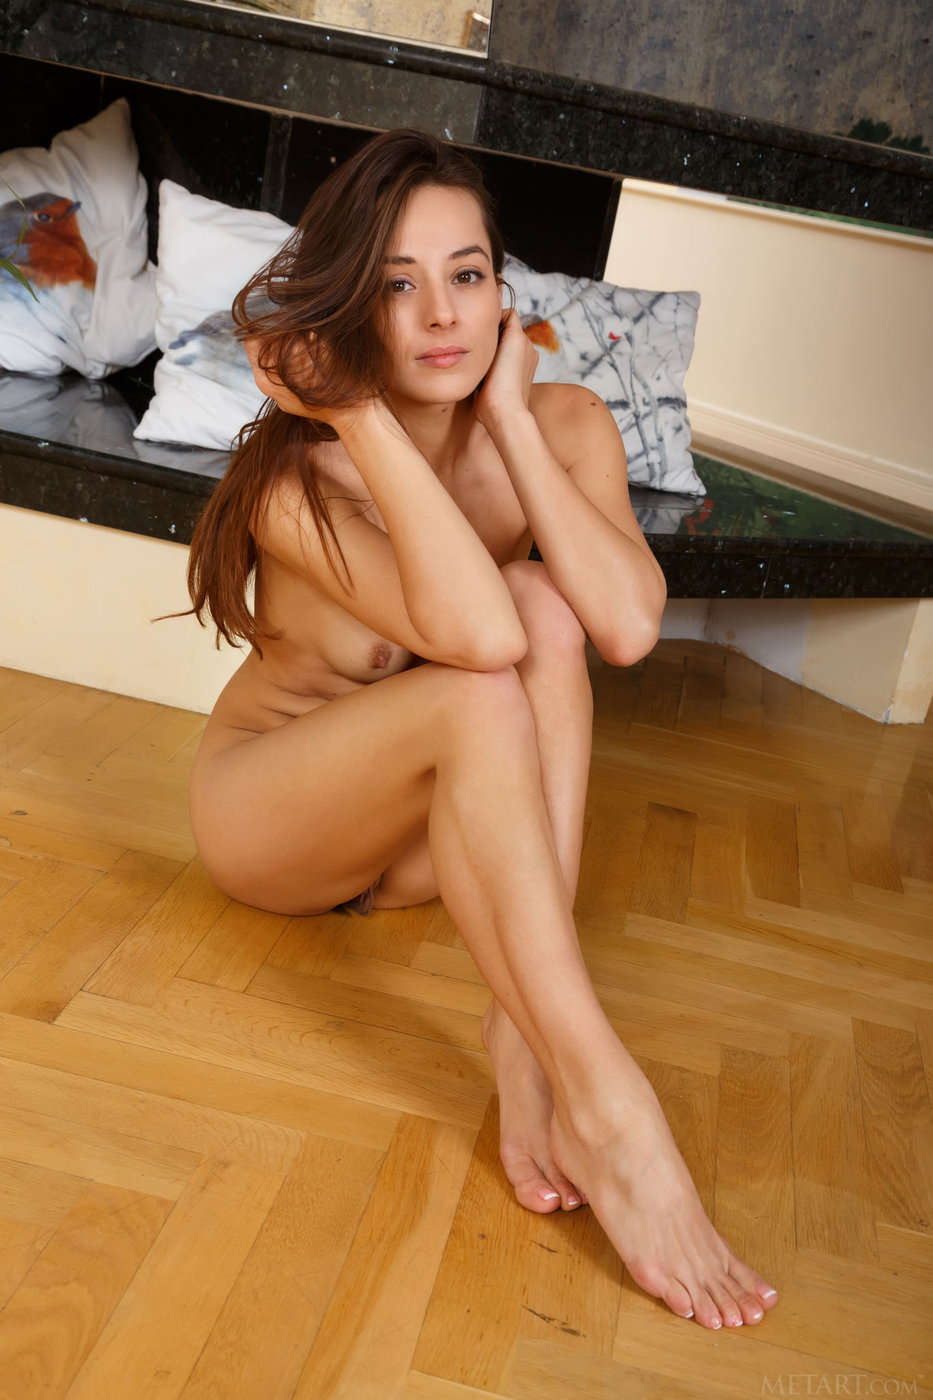 Brunette in sweater naked remarkable question